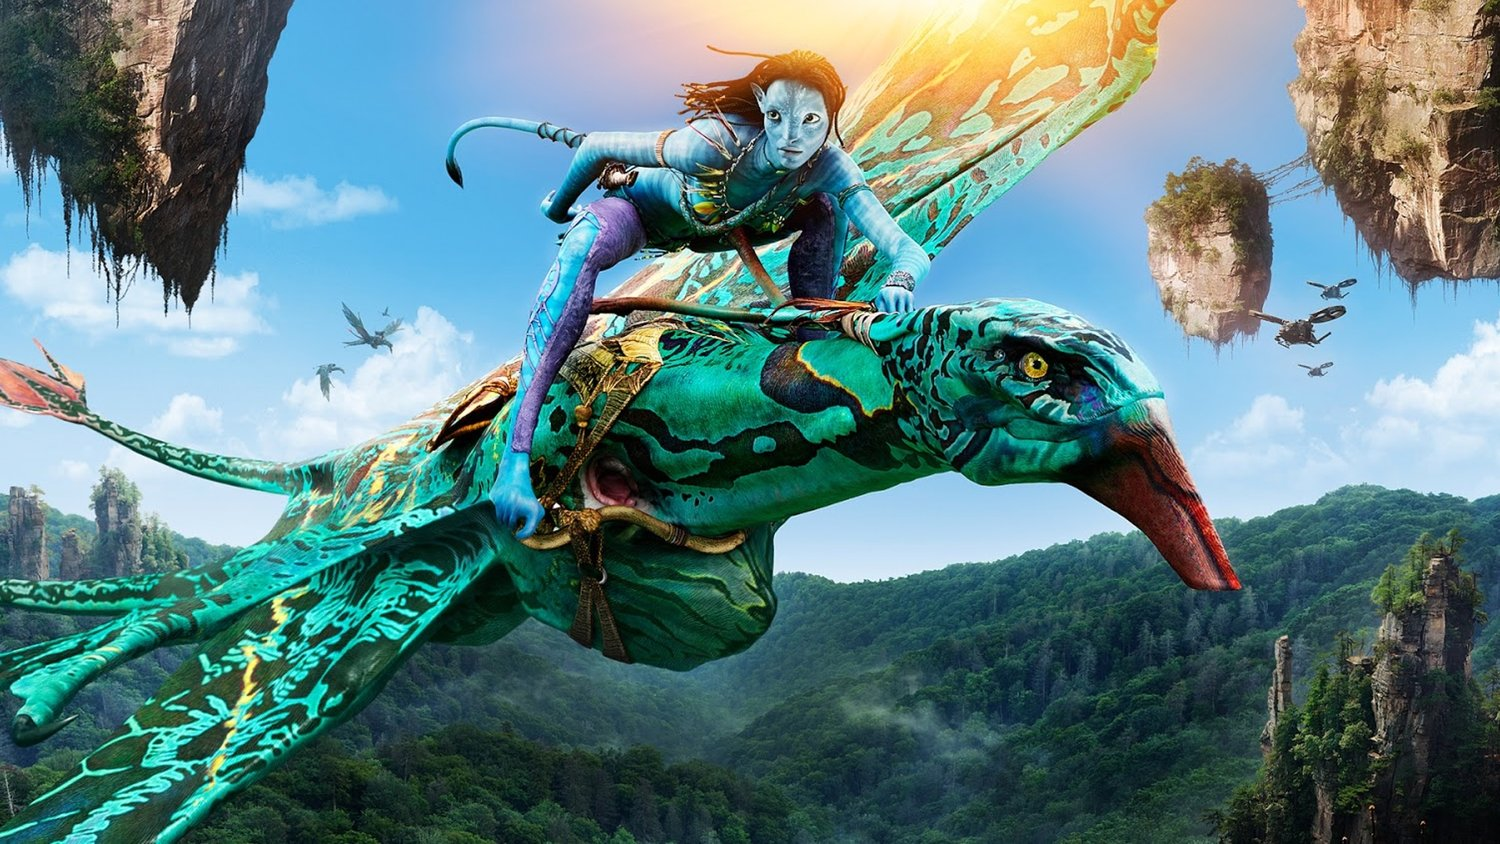 Watch a Tour of the New AVATAR Theme Park That Shows Us What Happens After the Film Saga Ends